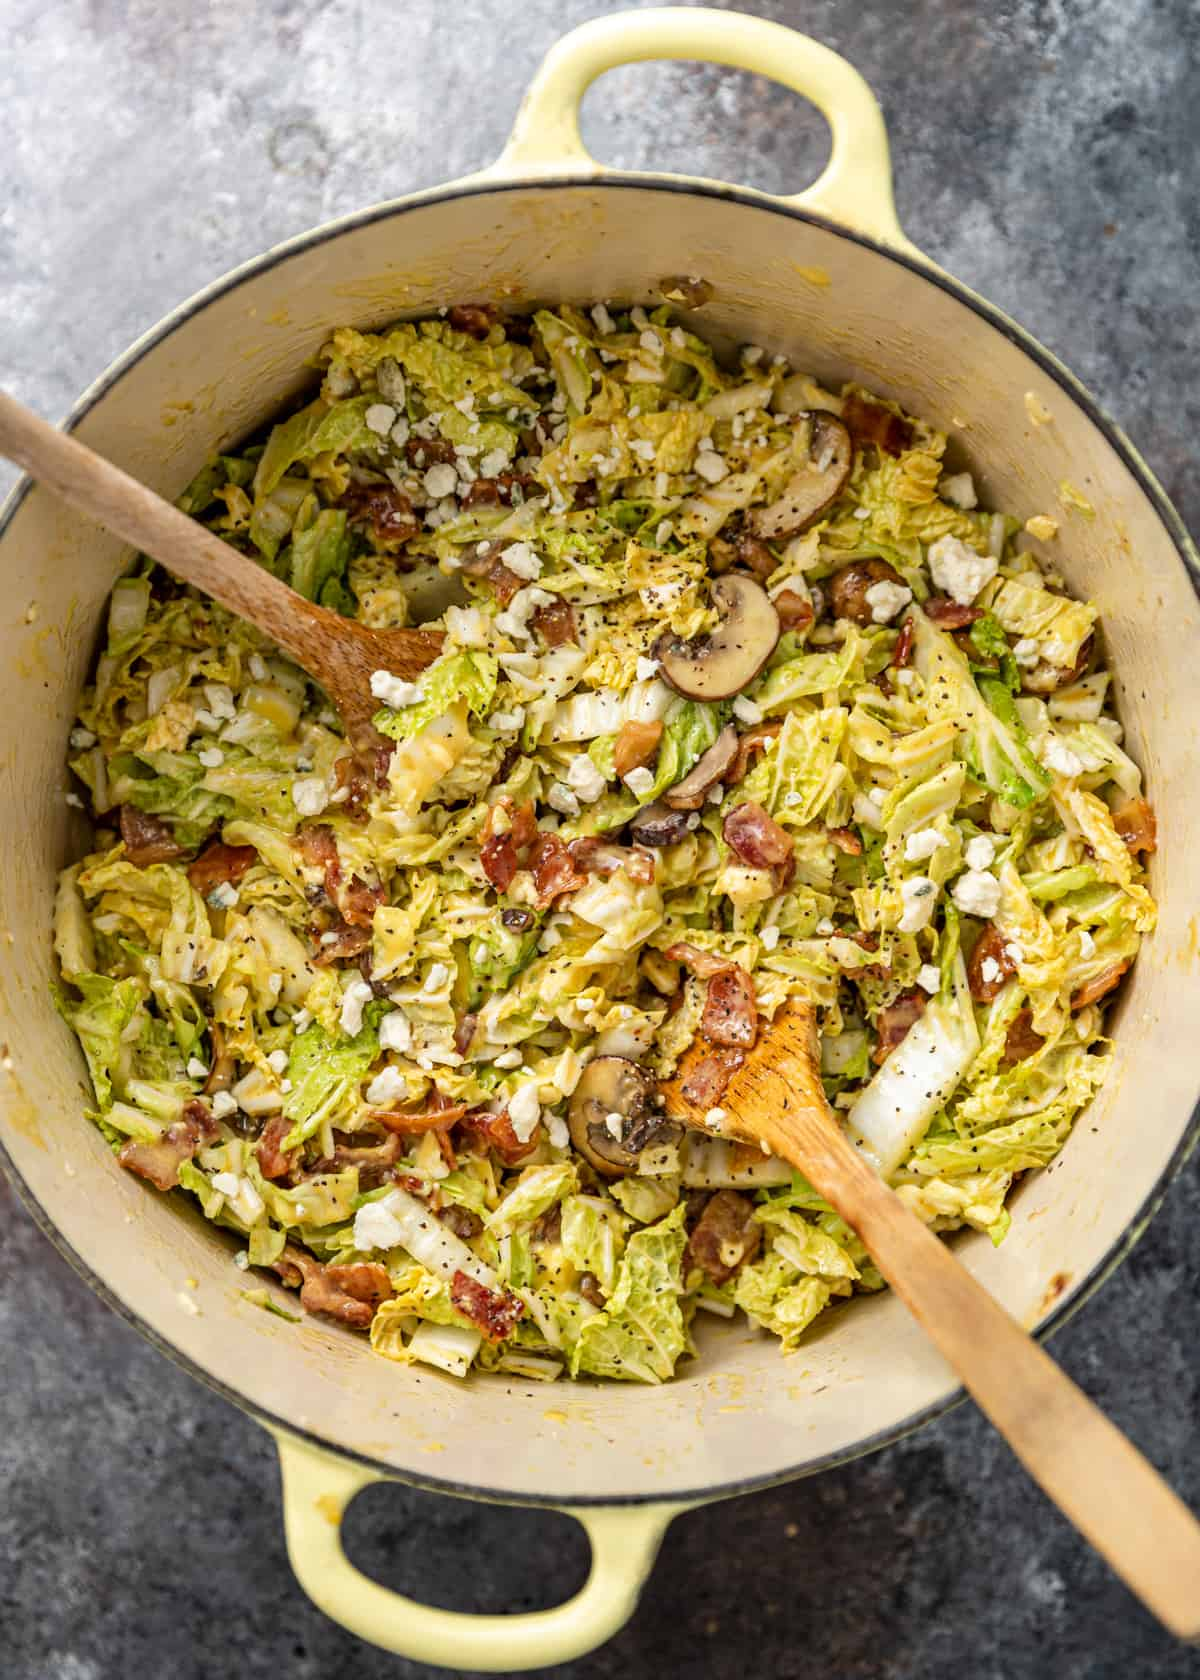 warm napa cabbage salad in dutch oven with two wooden spoons